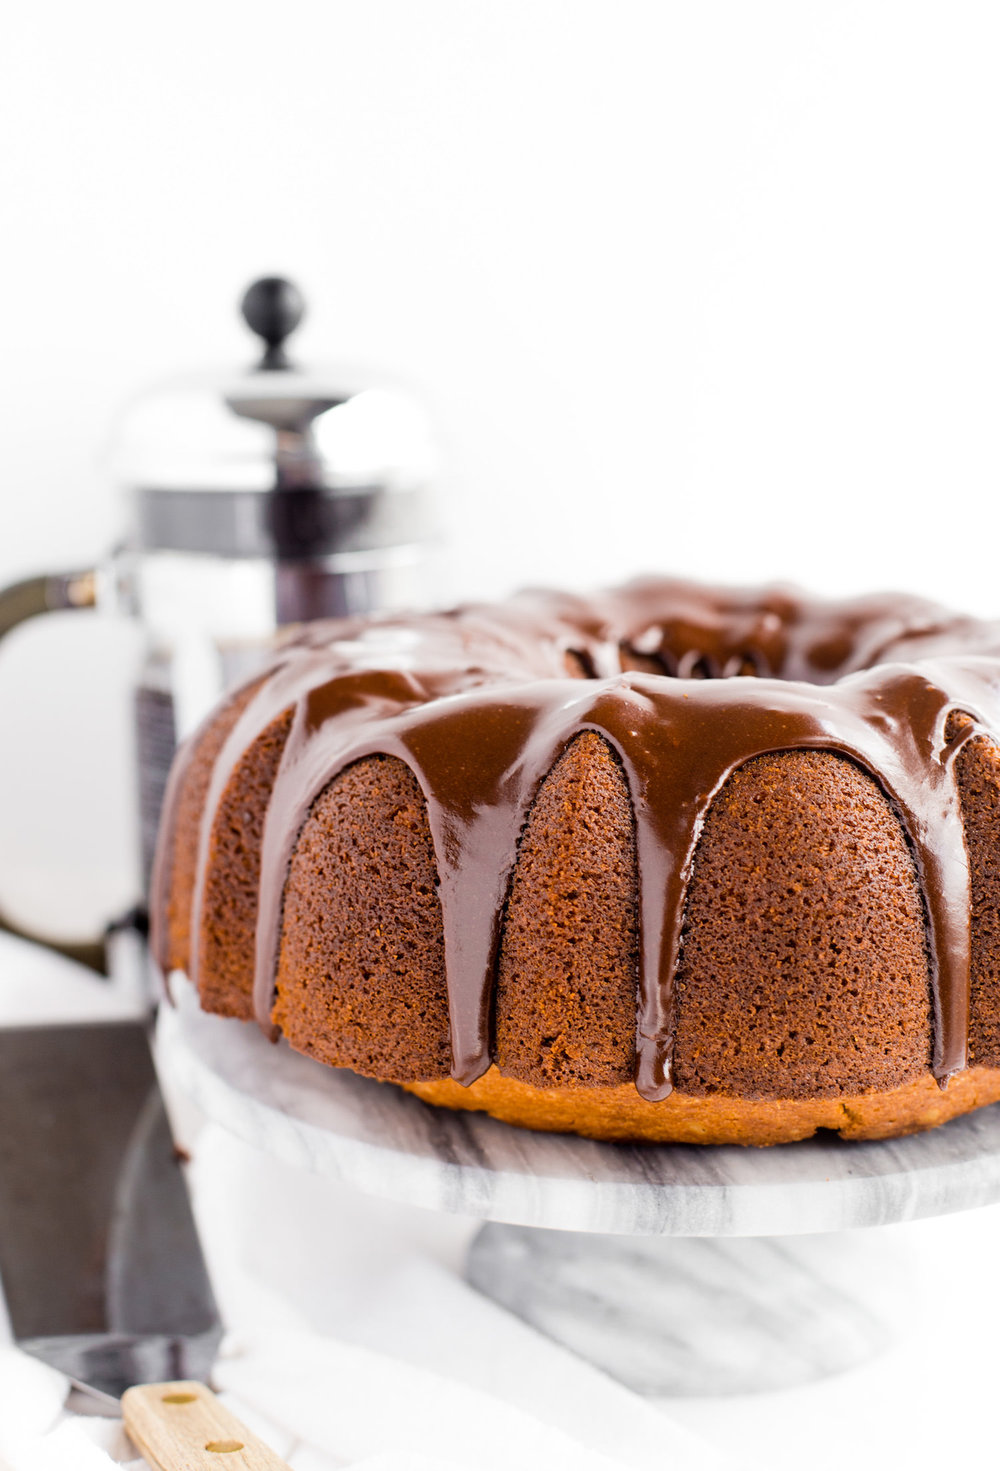 Vanilla Bundt Cake with Gooey Chocolate Center: soft, tender, fluffy yet hefty vanilla cake with a gooey, rich, oozing chocolate center. Dairy-free! | TrufflesandTrends.com